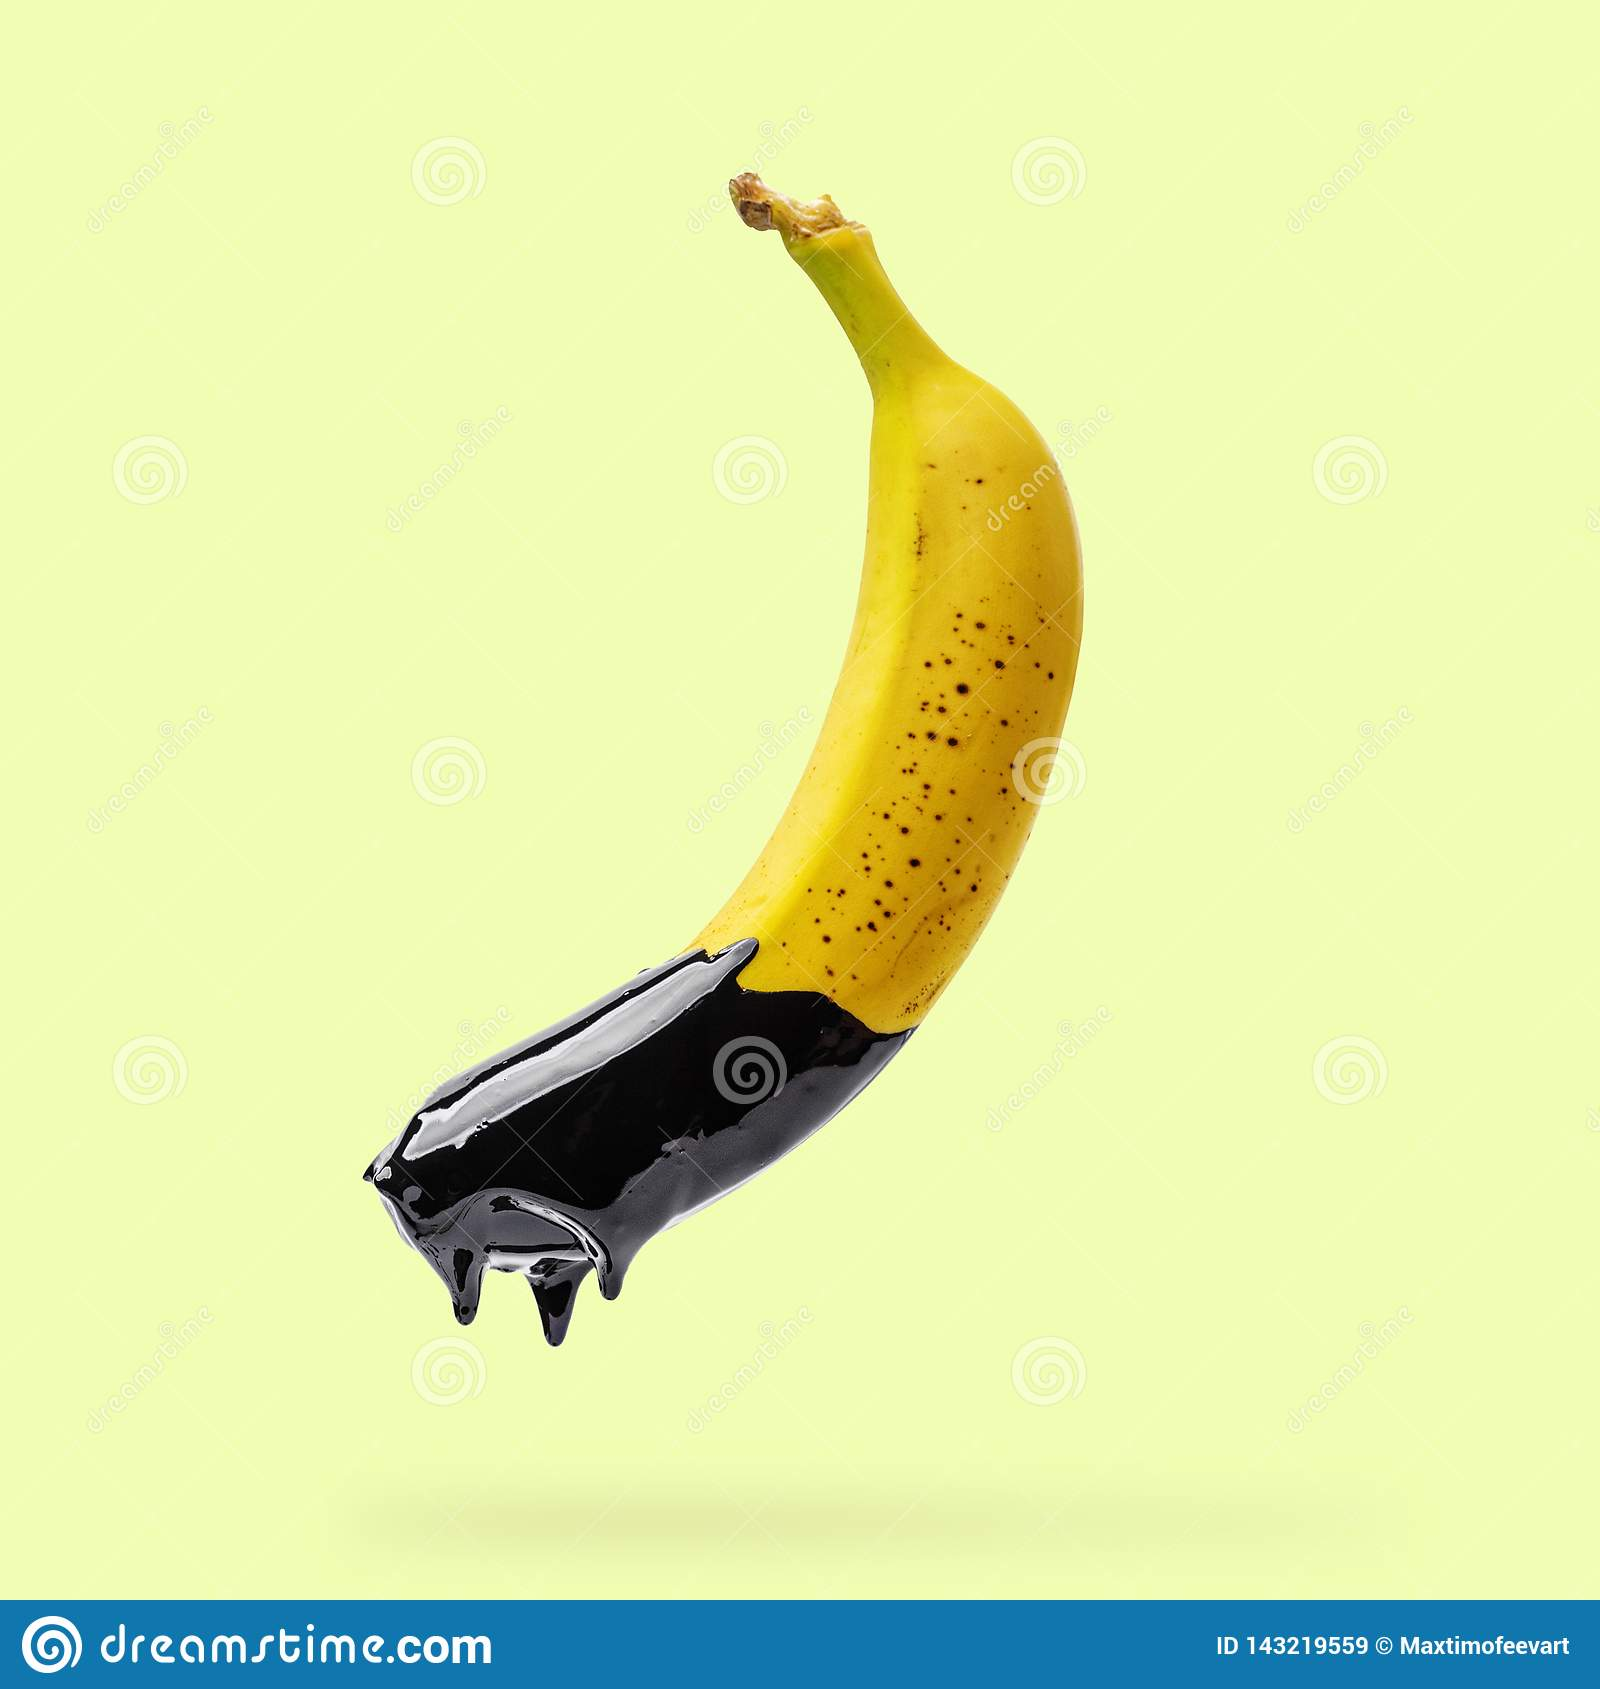 Banana with dripping black paint on yellow background. Creative food concept